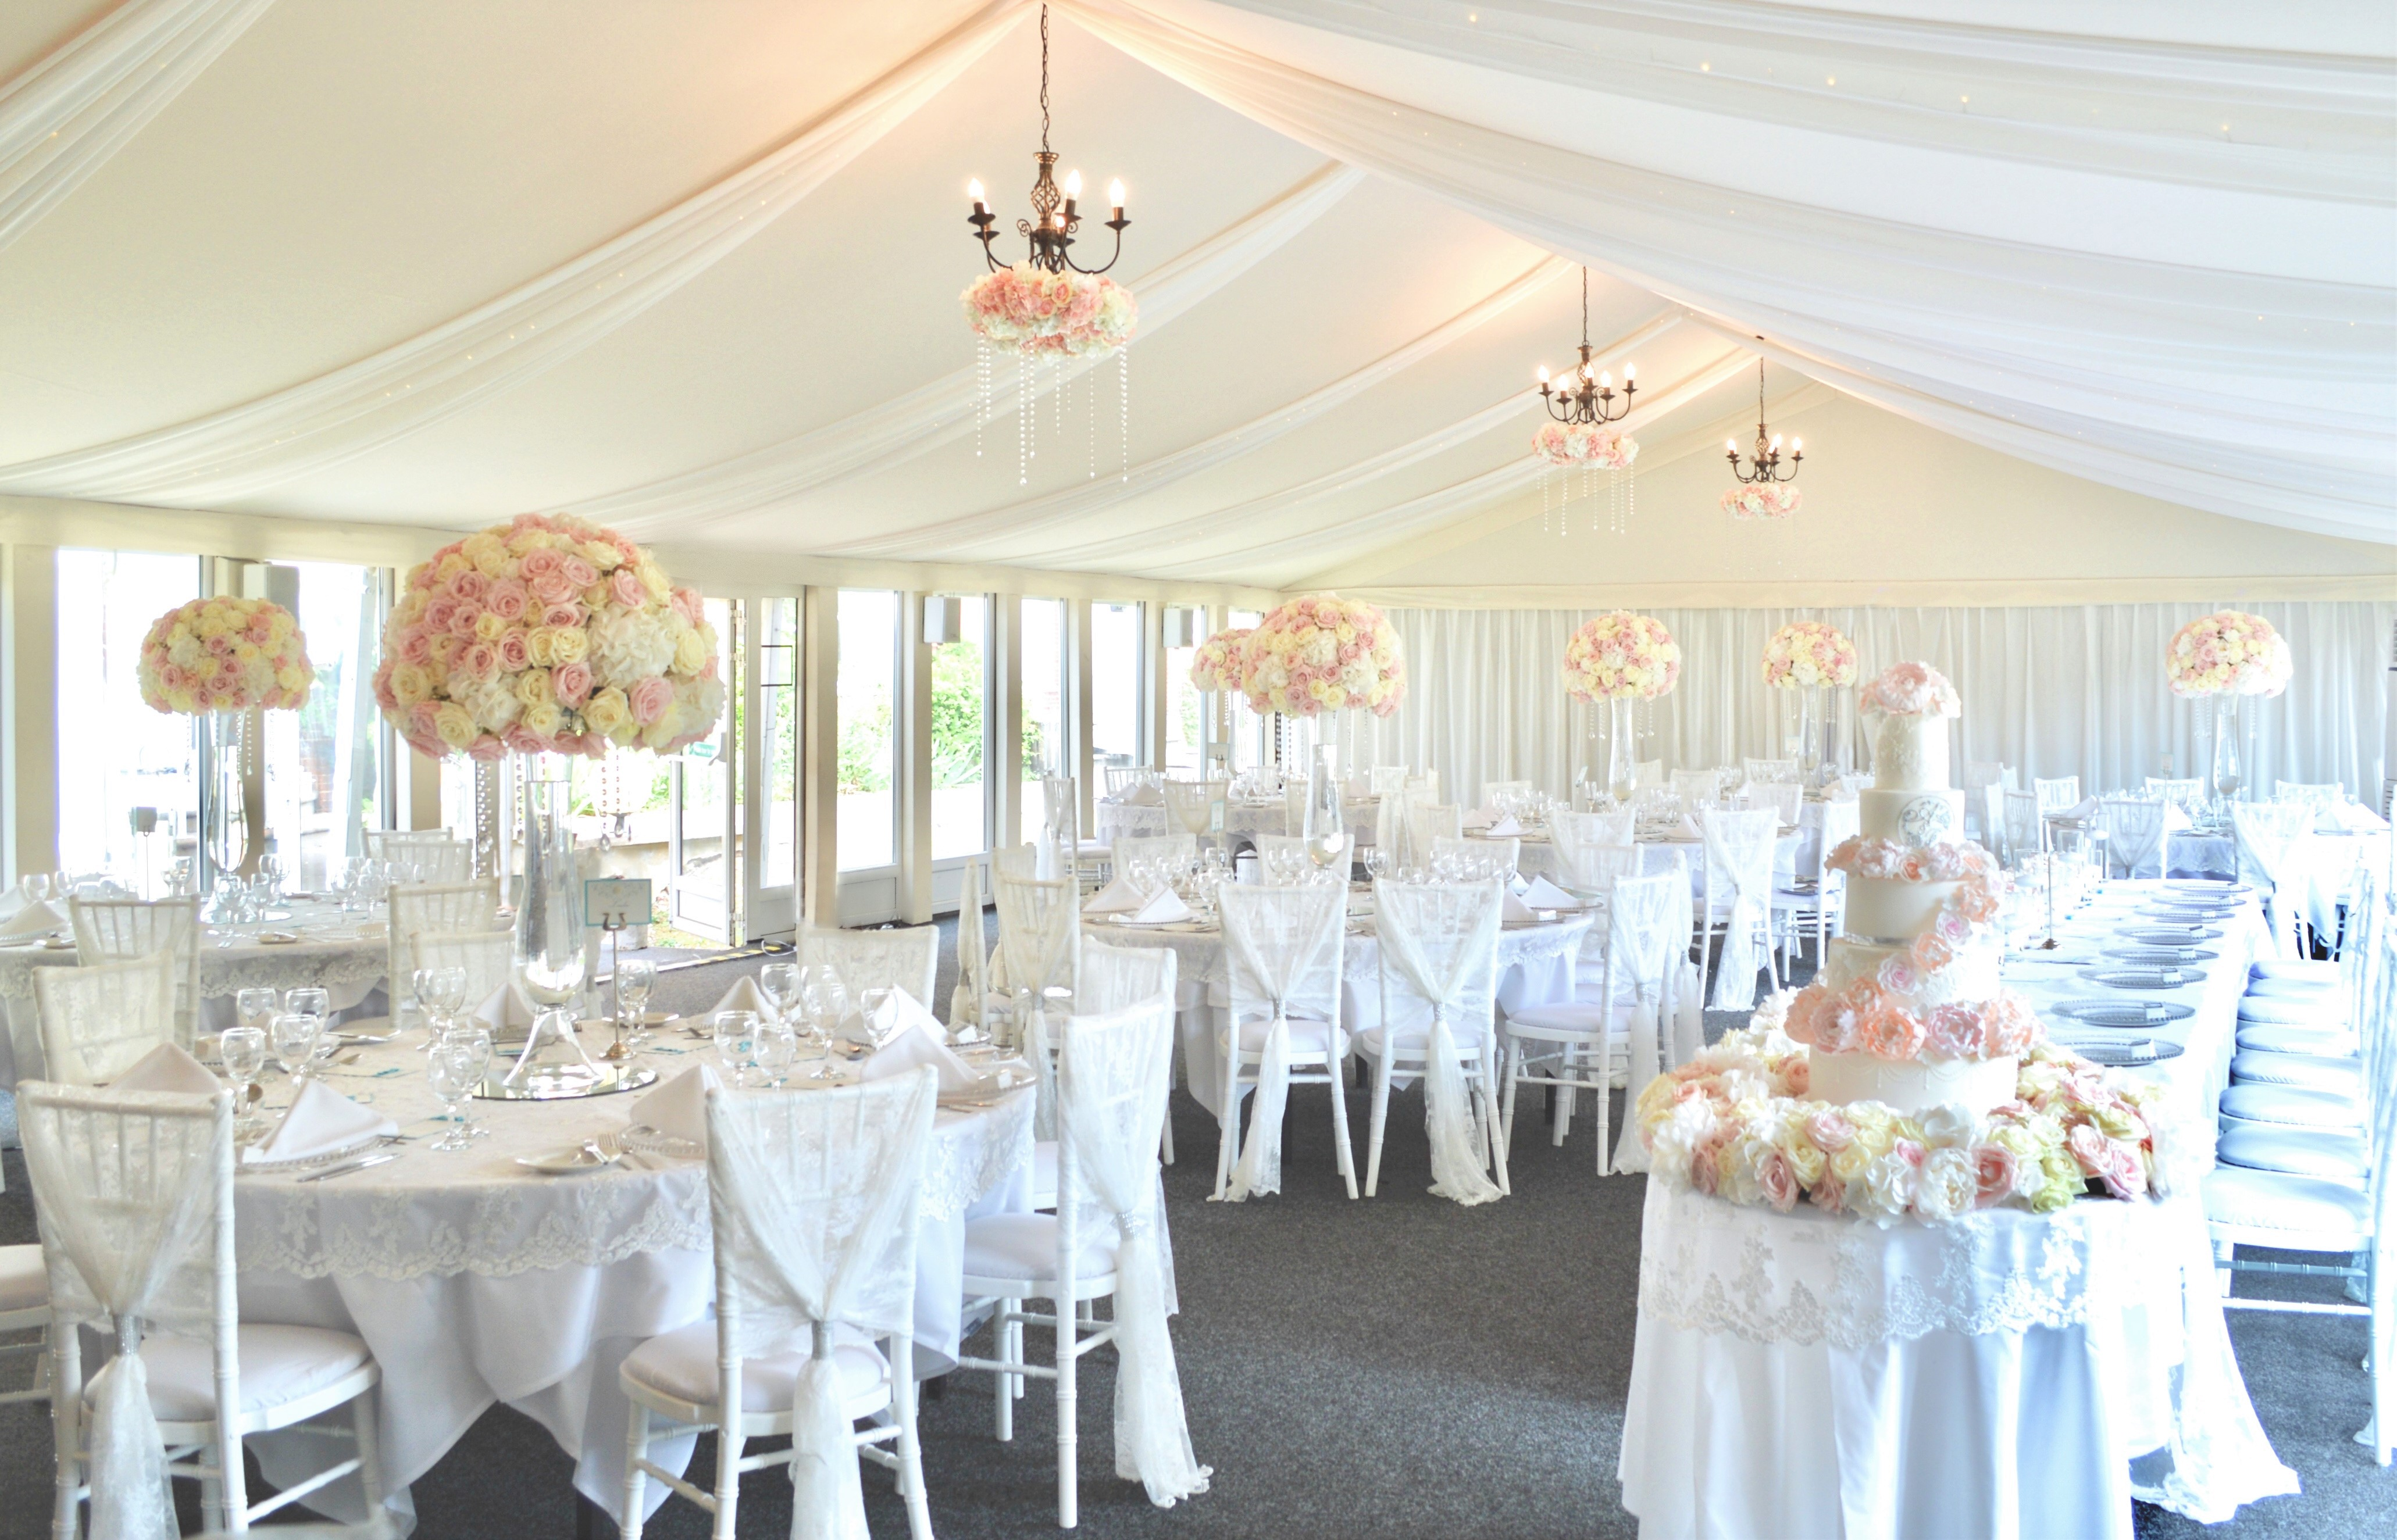 Luxury Blush Pink and White Wedding Flowers and Cake at Hunton Park Peony Hydrangeas and Roses Tall Vase Centrepieces with Crystals and Floral Chandelier Cherie Kelly 6 Tier Wedding Cake London.jpg